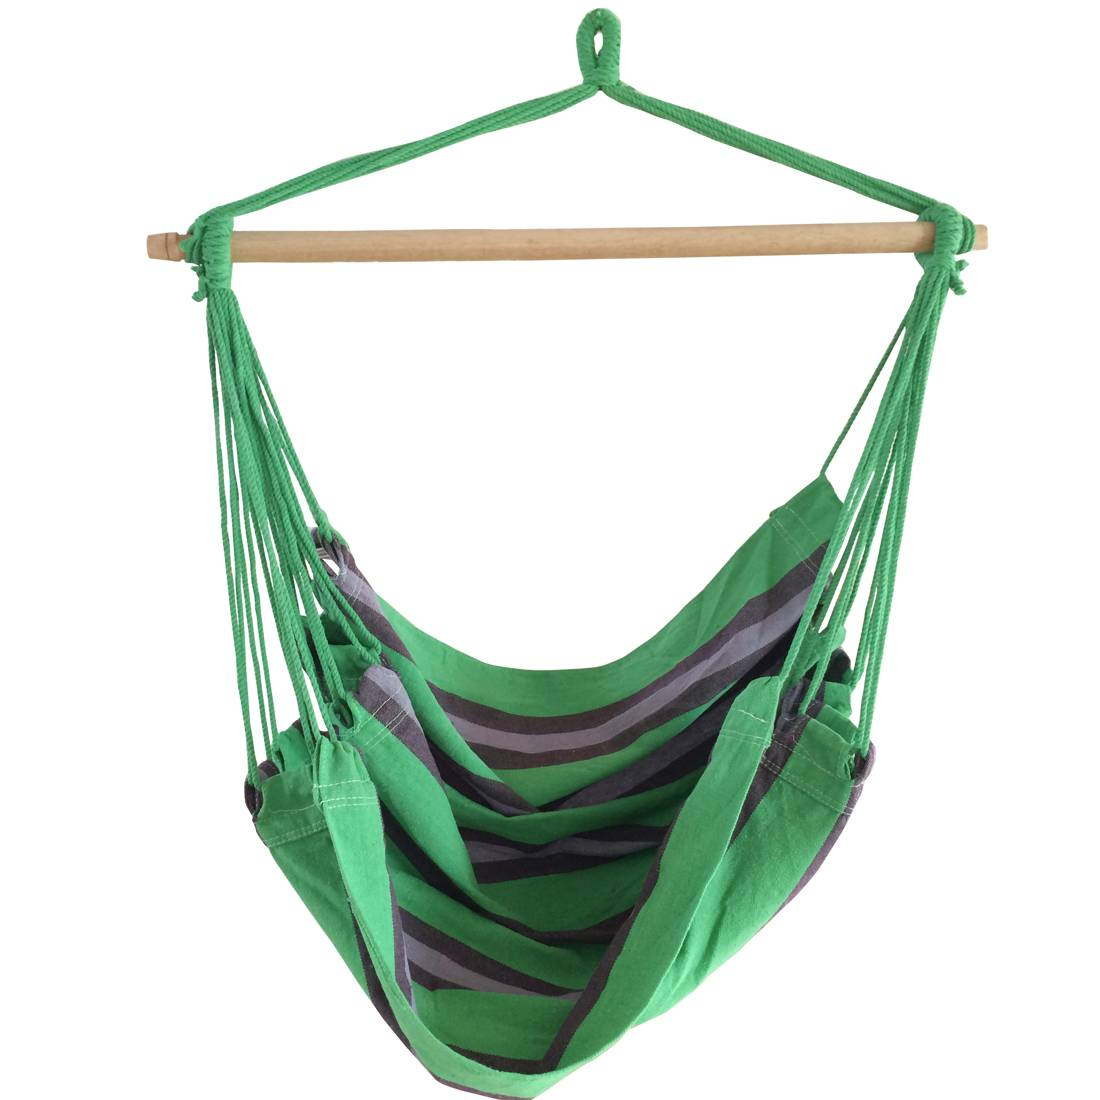 Striped hammock hanging chair without pillows swing hammock chair